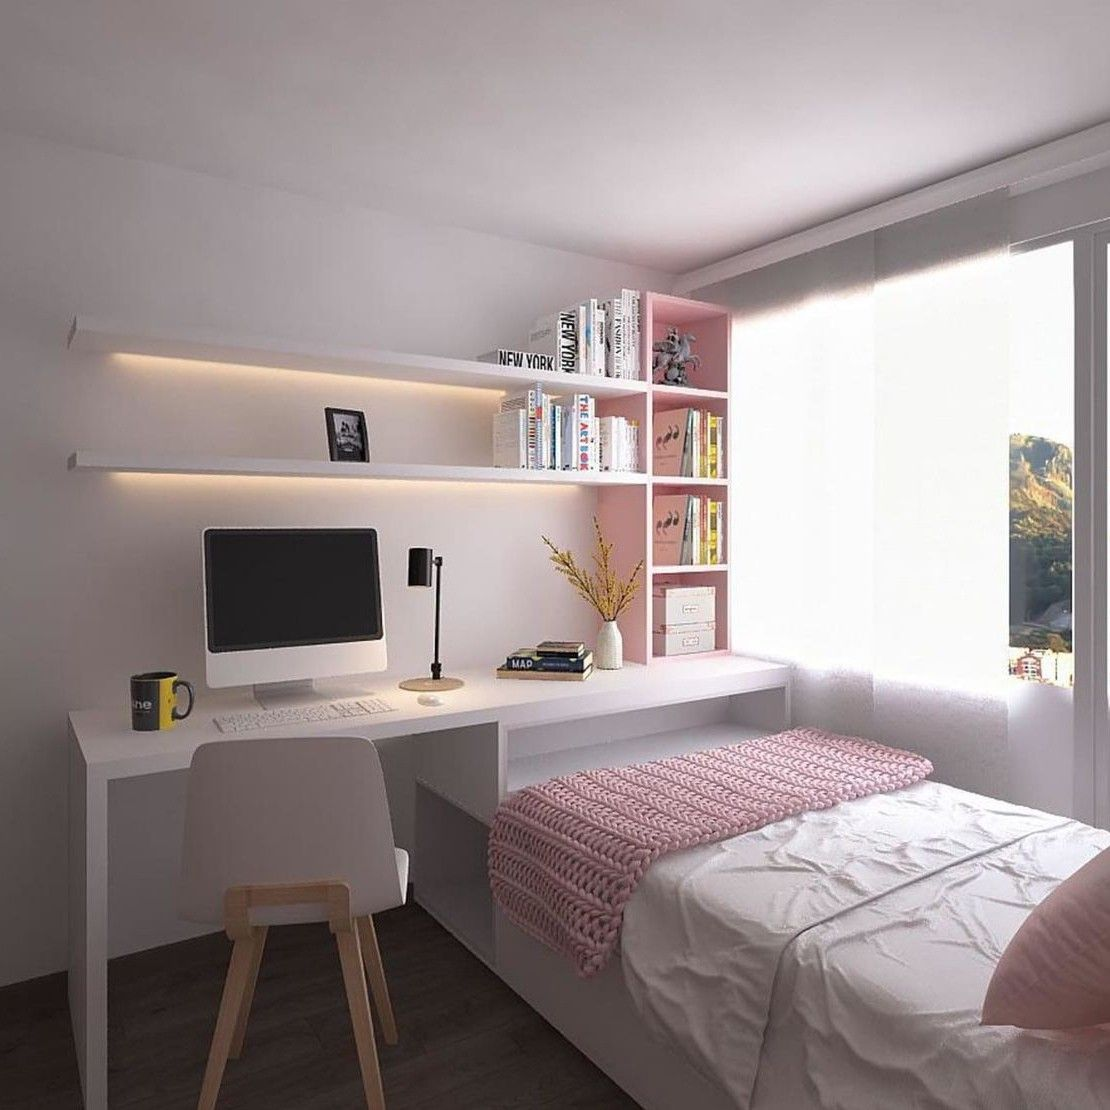 Pin By Huong Trieuthu On Art Tiny Bedroom Design Small Room Design Bedroom Small Room Bedroom